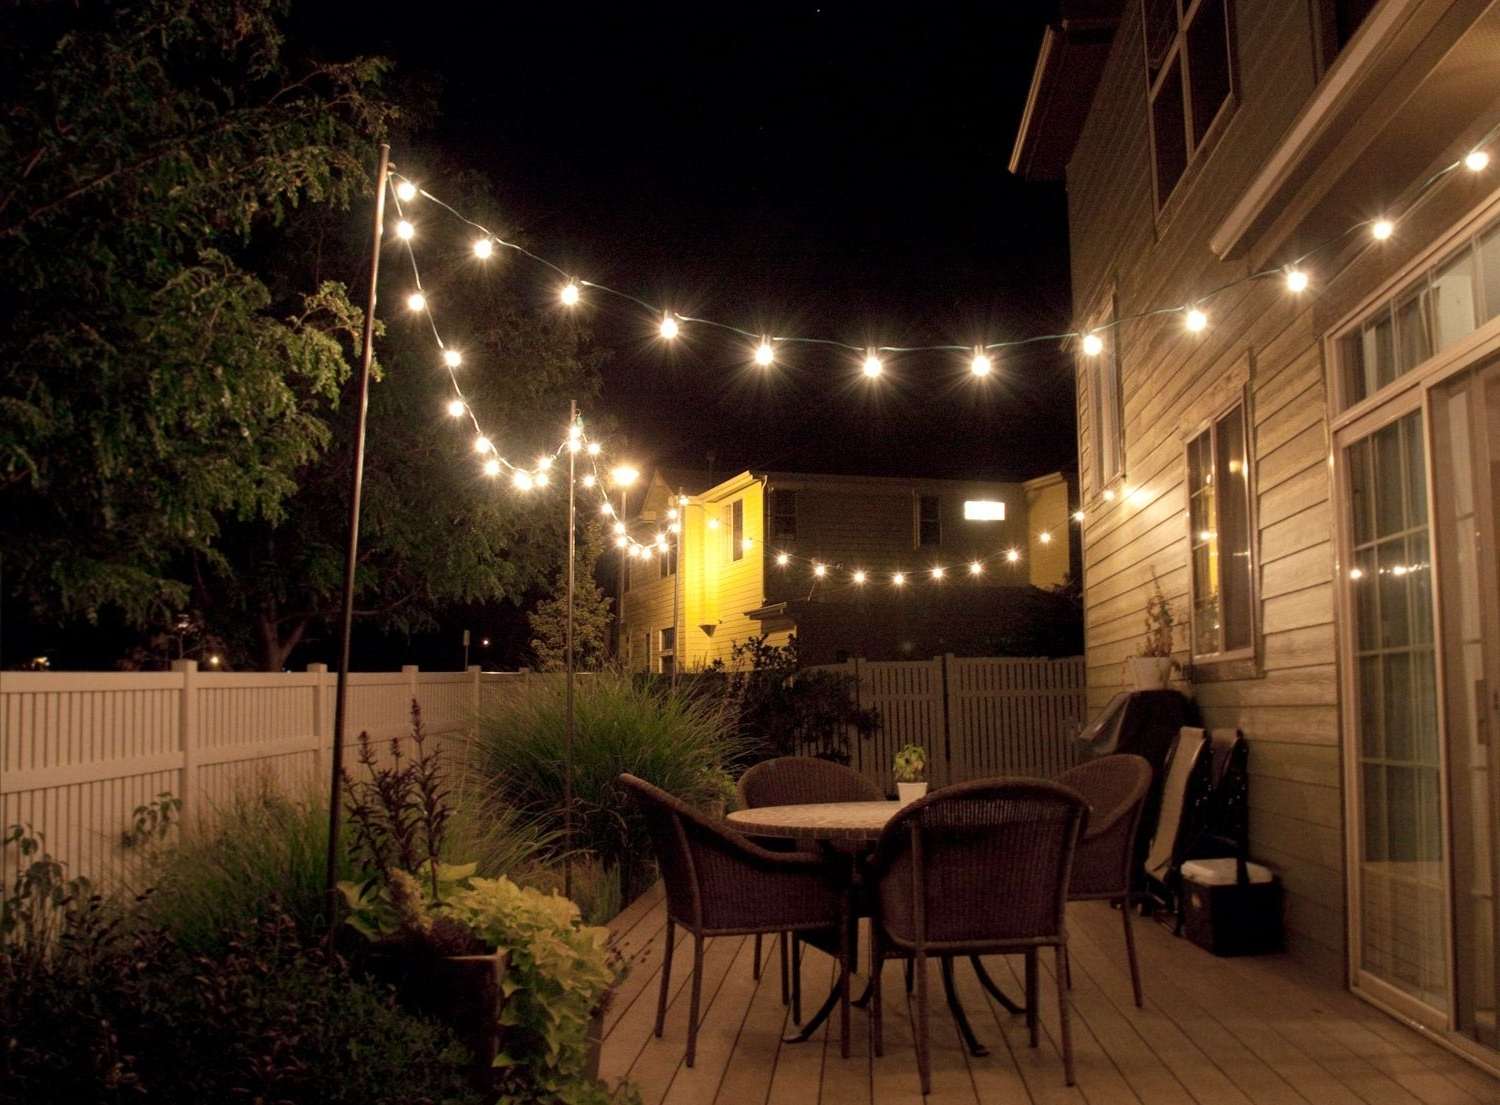 Hanging Outdoor String Lights At Target Within Trendy How To Make Inexpensive Poles To Hang String Lights On – Café Style (View 11 of 20)